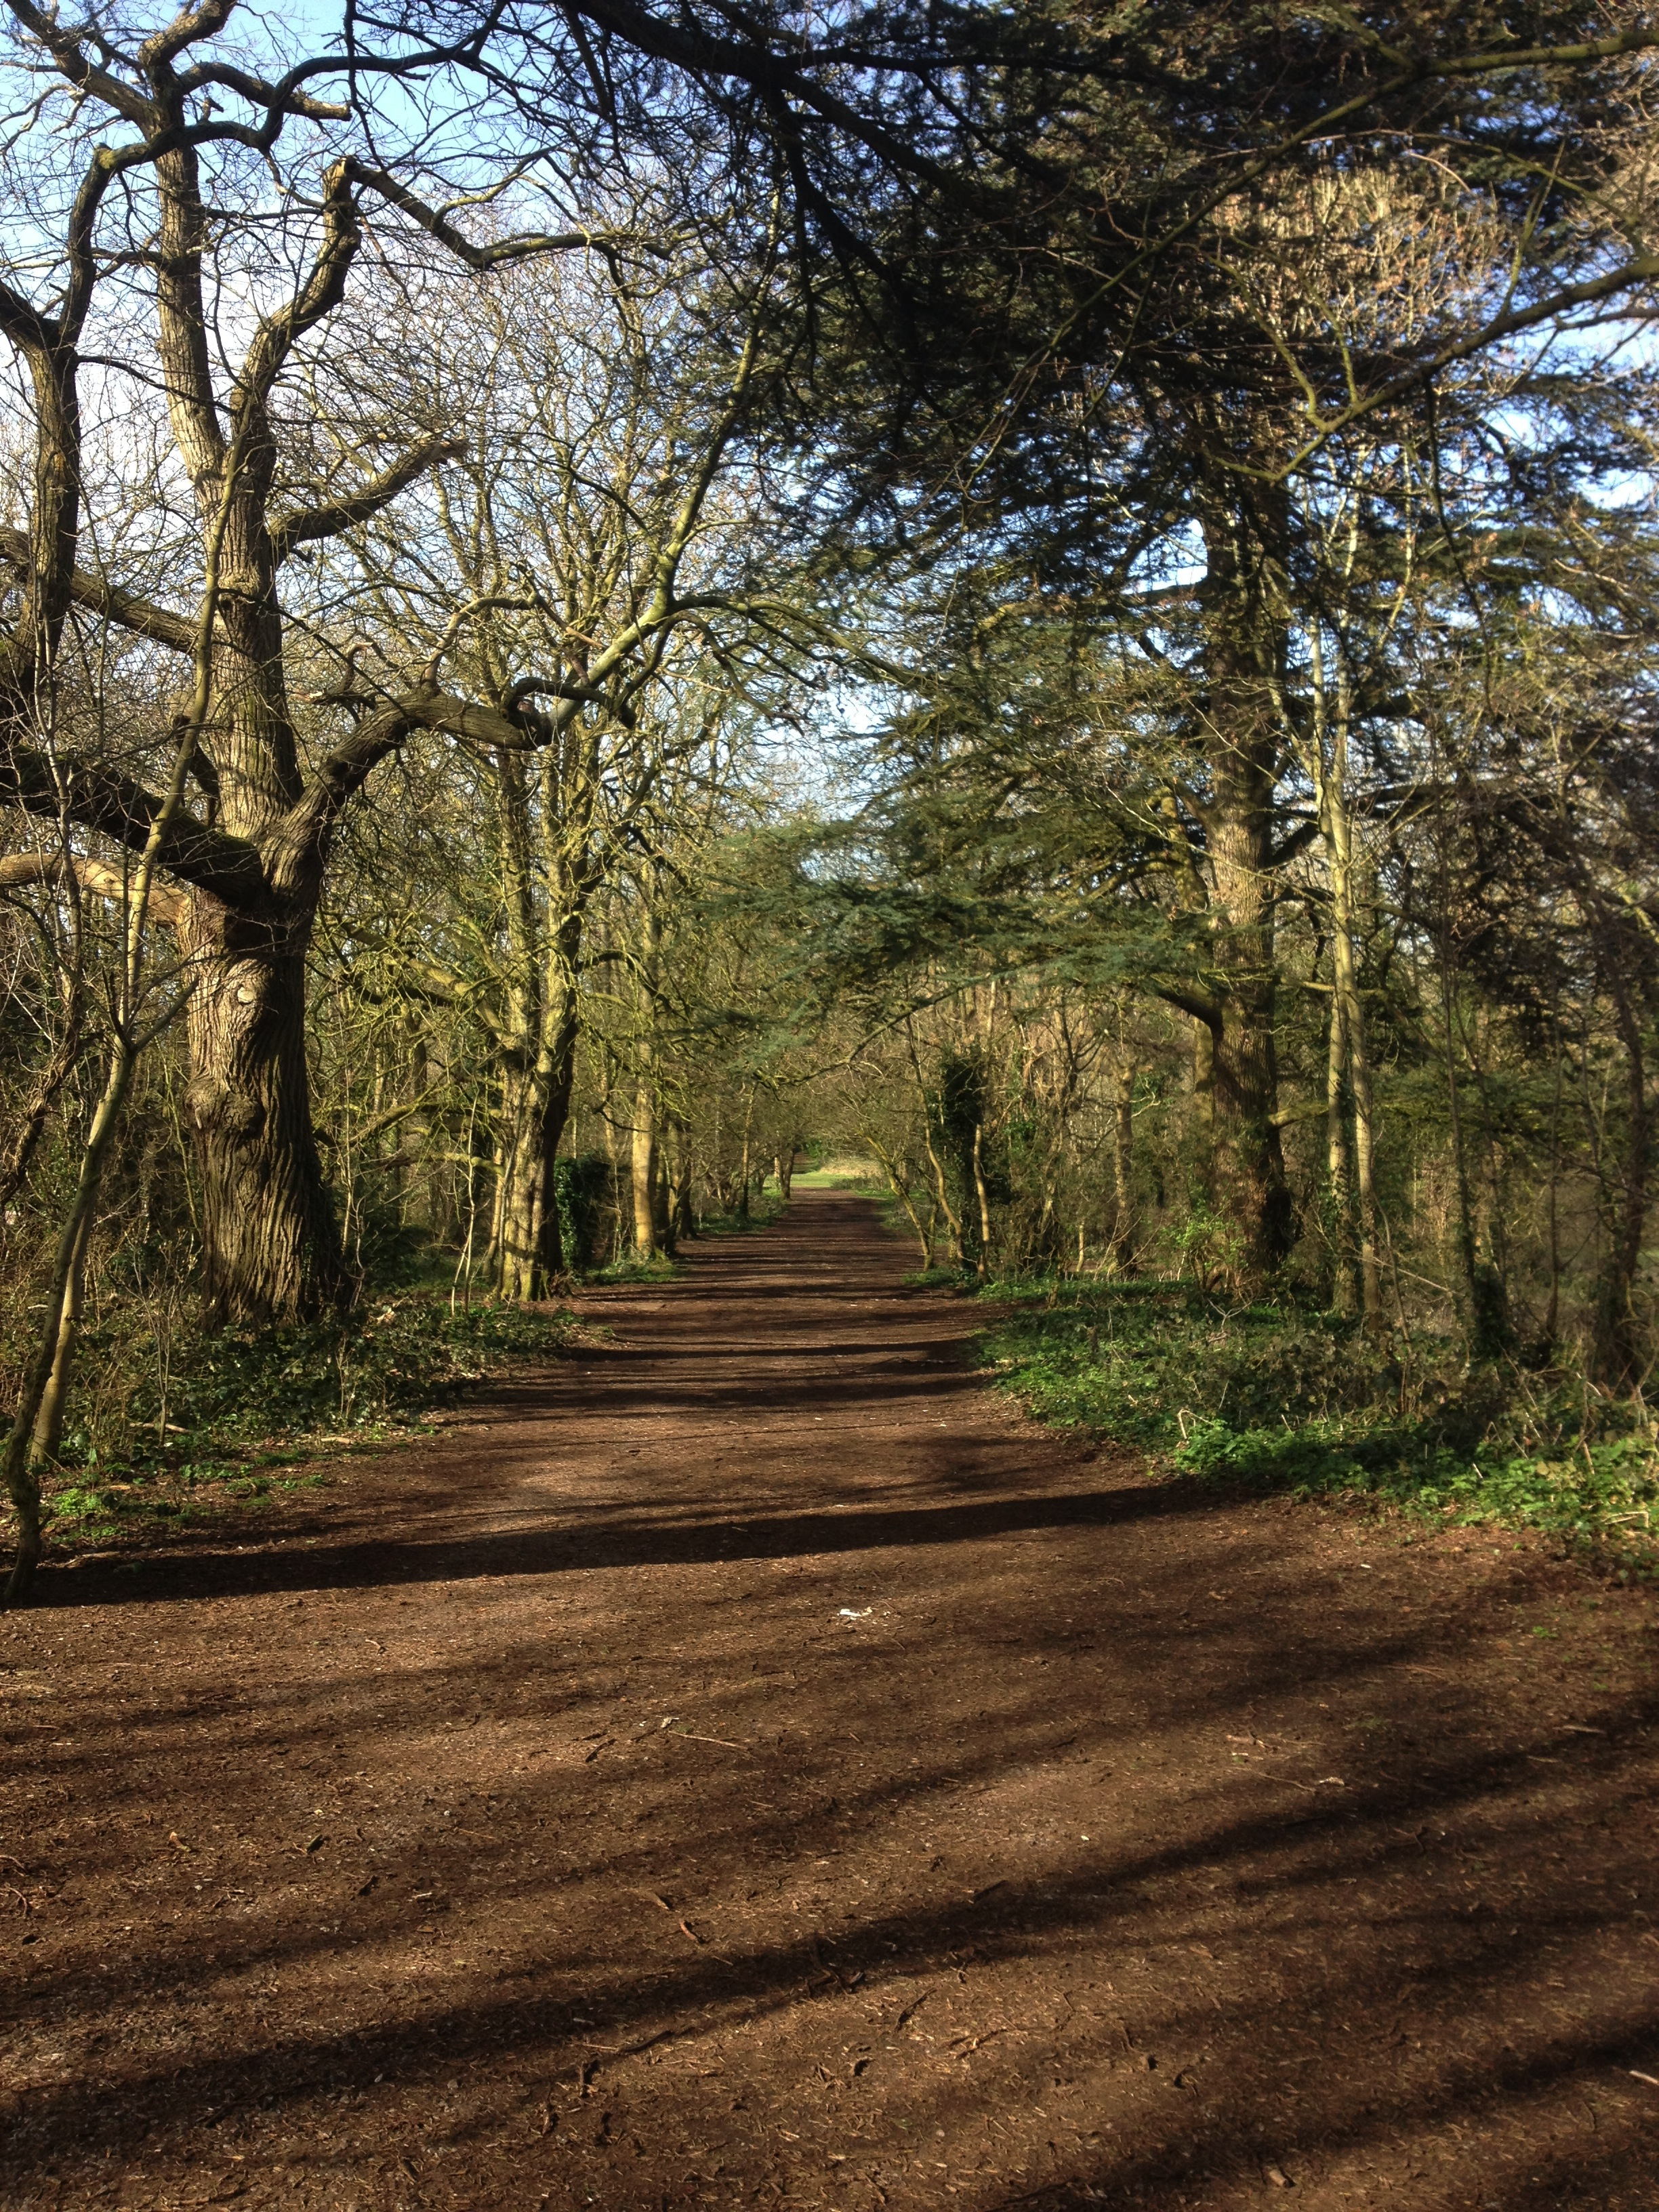 Shirehampton Park dog walking trail